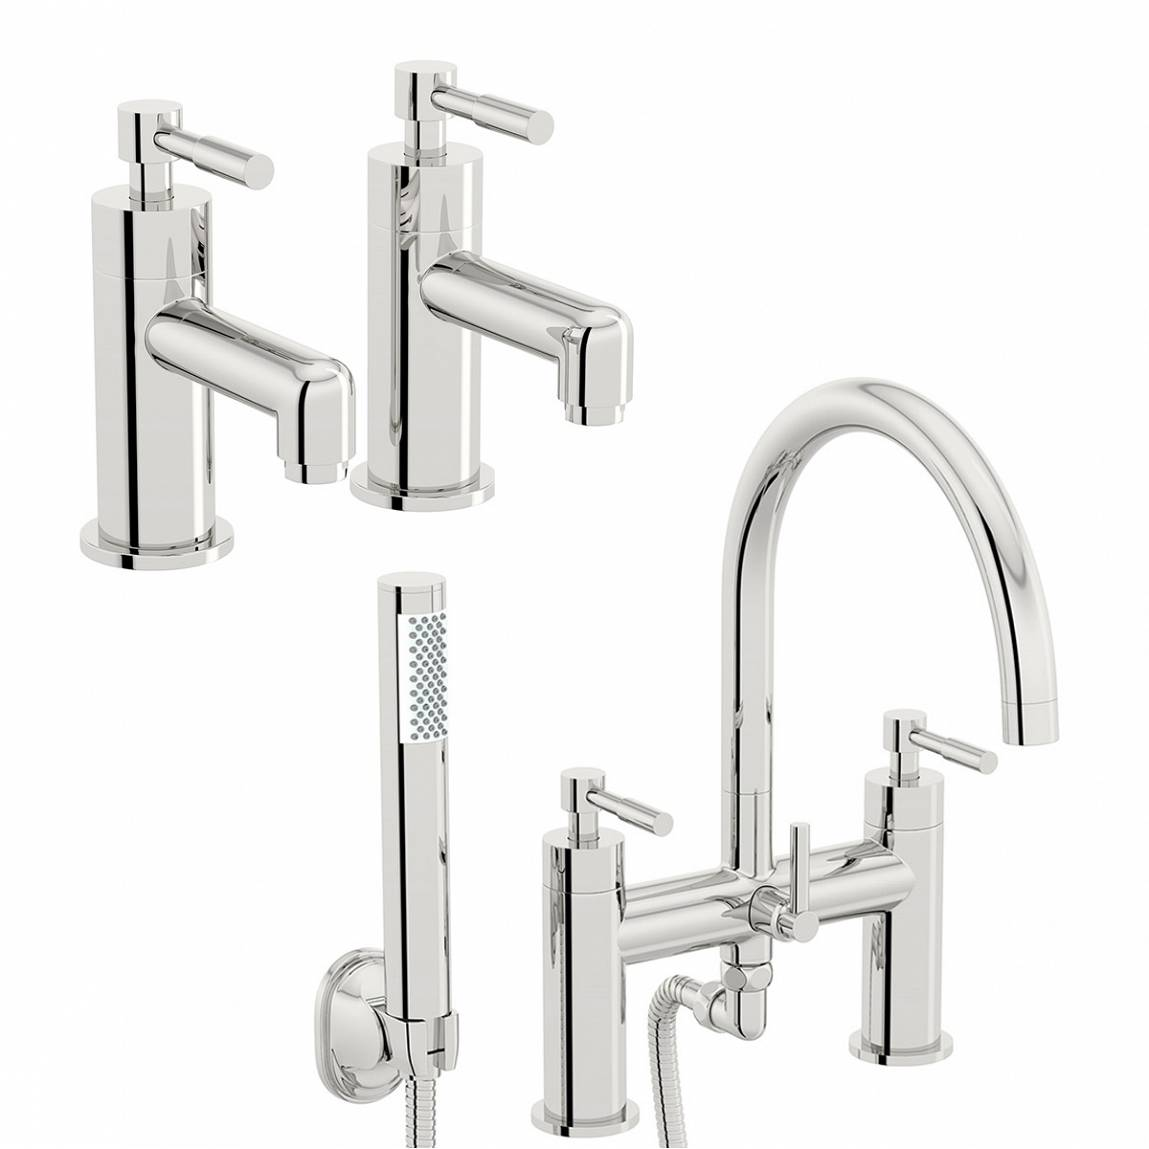 Image of Secta Basin Taps and Bath Shower Mixer Pack